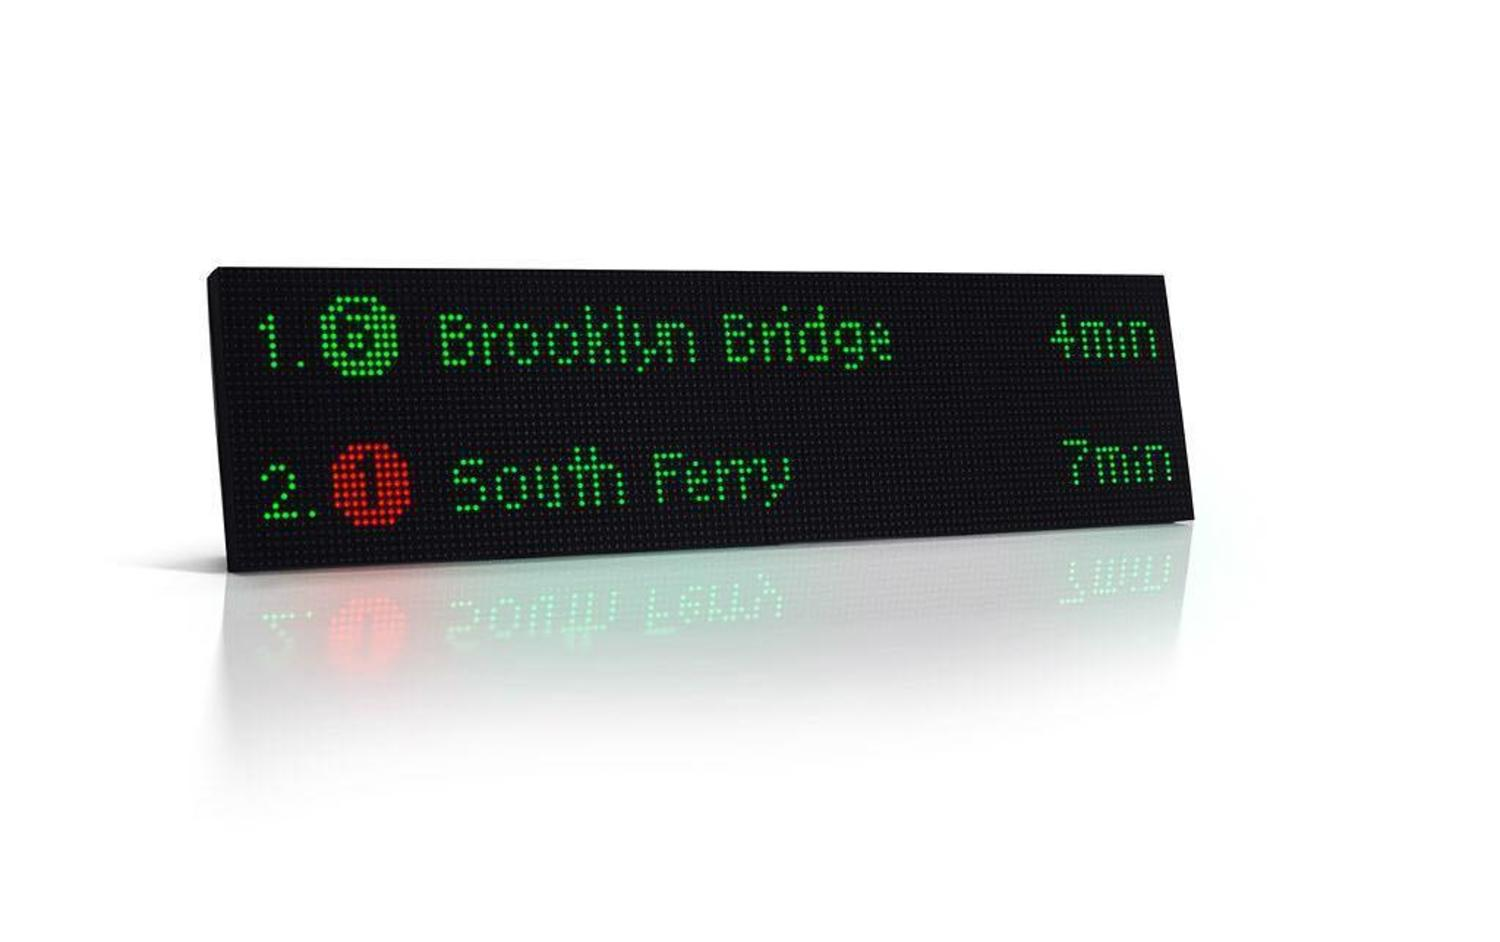 custom 3-d printed frames from @3dbrooklyn new site: www.nyctrainsign.com